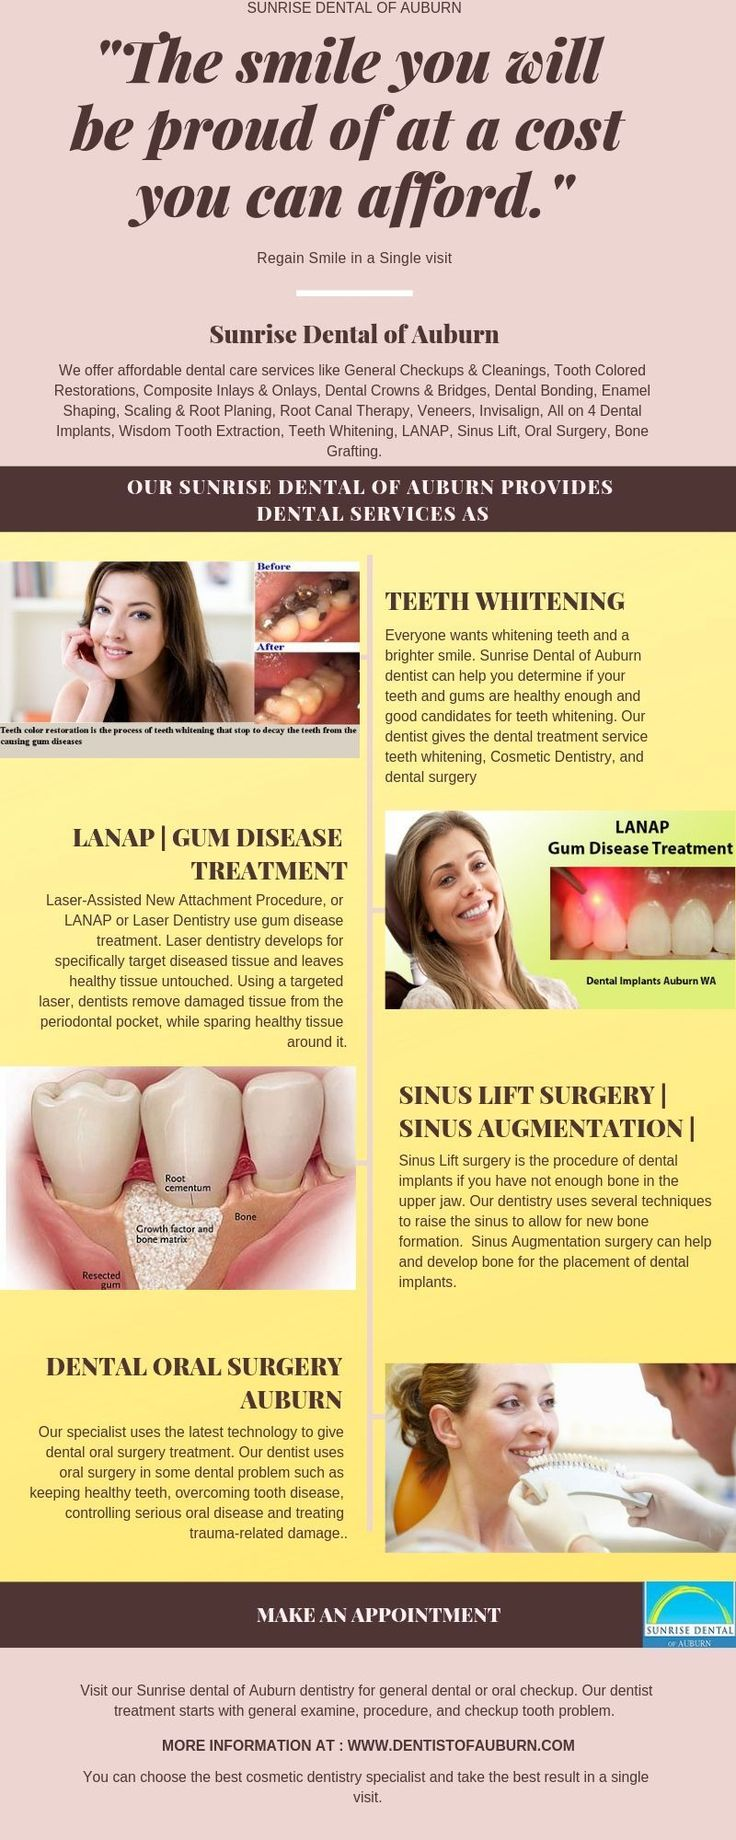 Pin on Clear Choice Dental Implants Cost